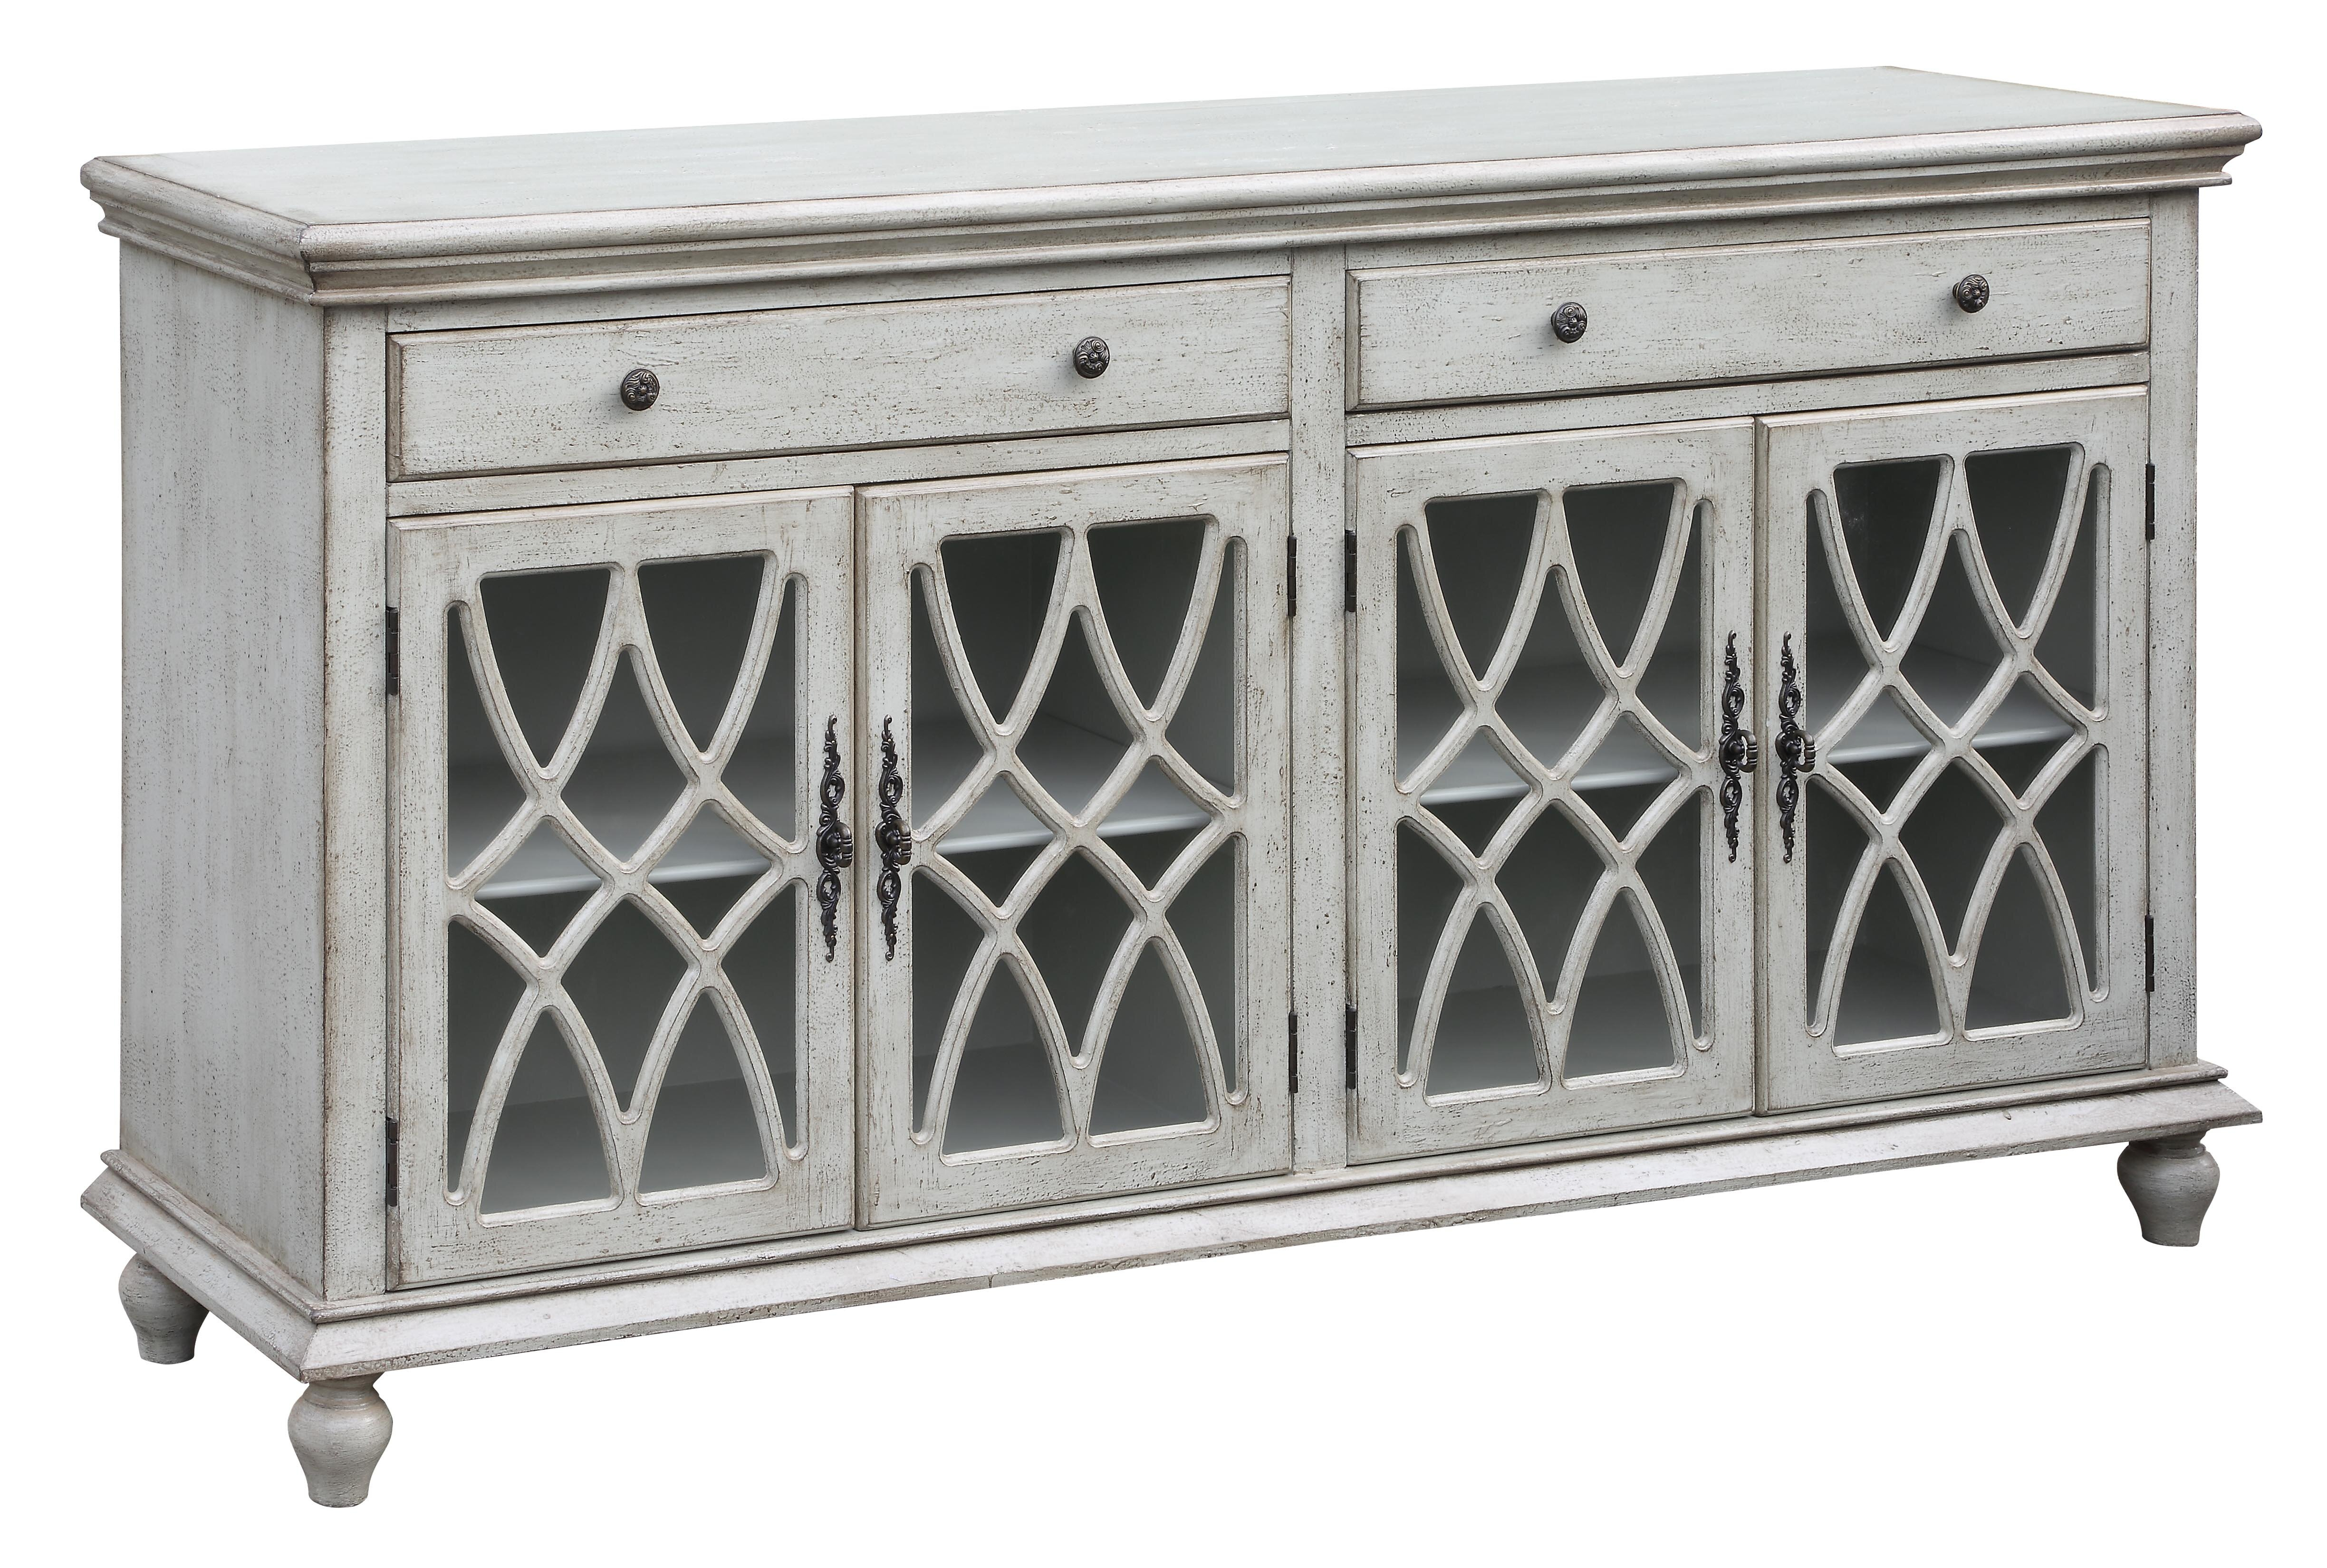 Raquette Sideboard & Reviews | Joss & Main In Tiphaine Sideboards (Gallery 19 of 30)